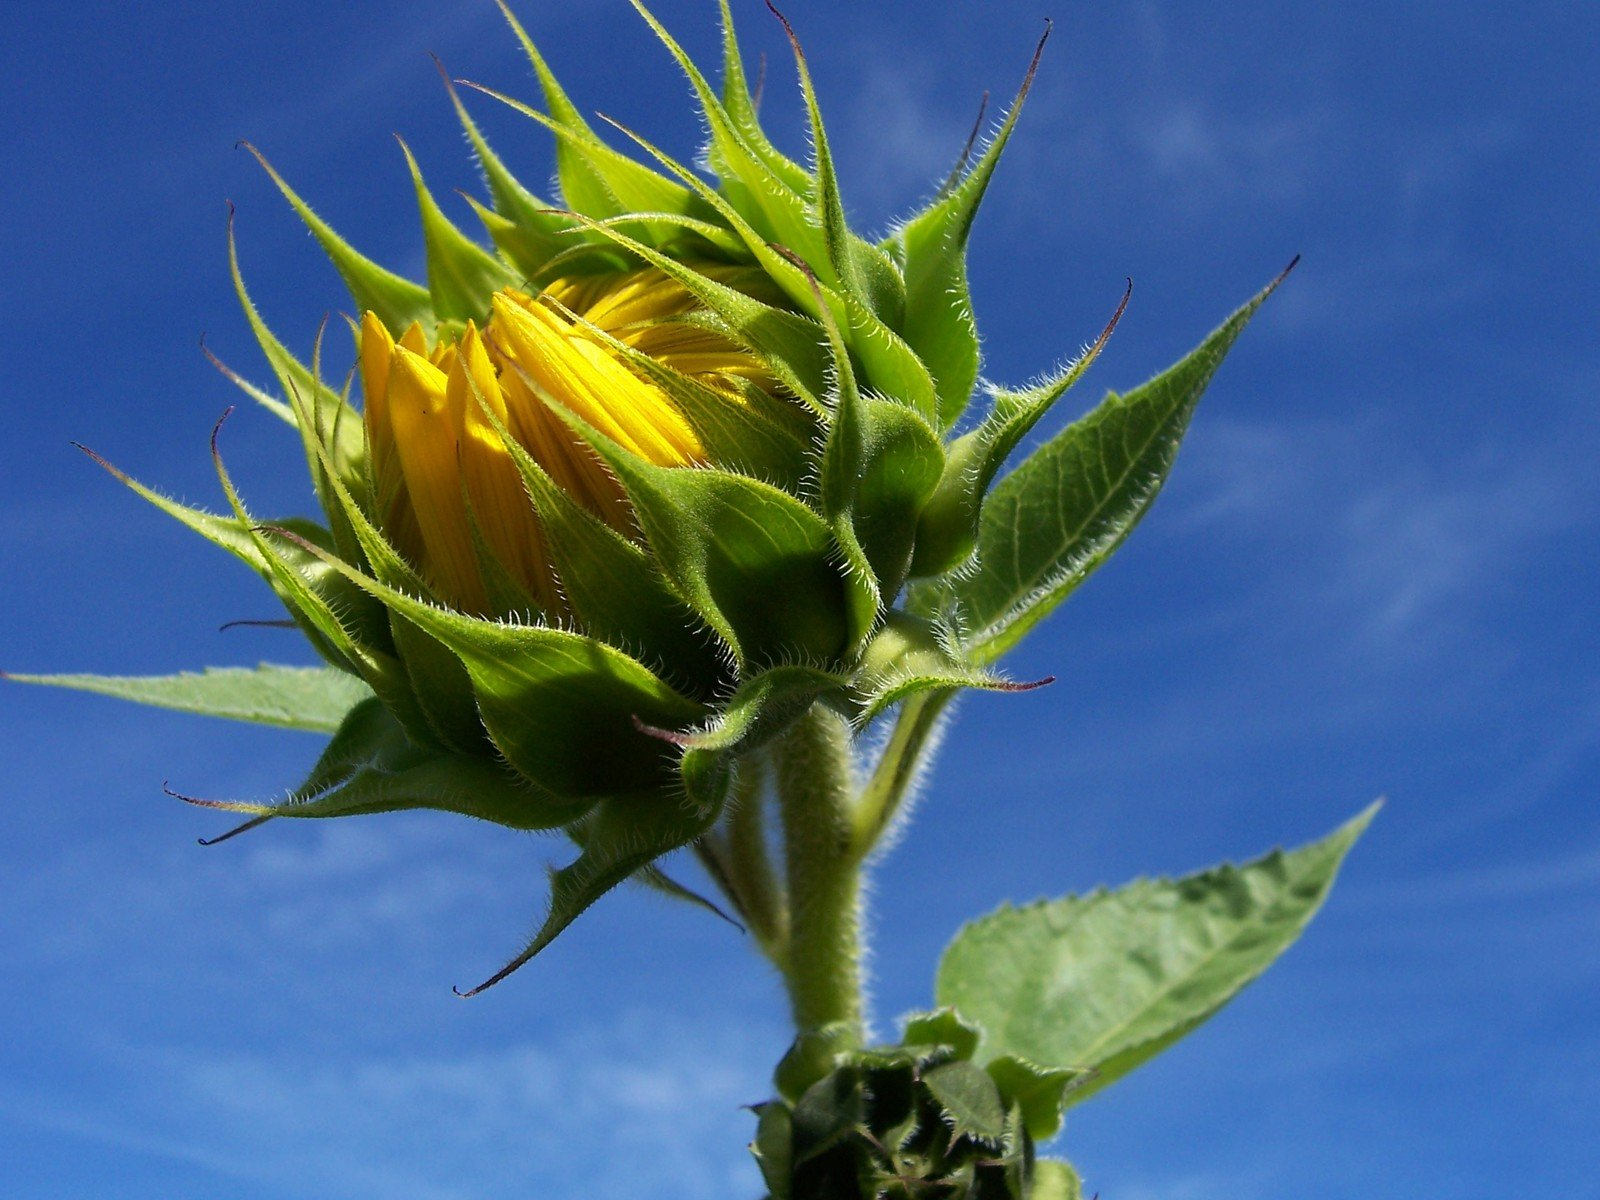 Sunflower Bud About to Bloom Picture | Free Photograph ...  |Sunflower Bud